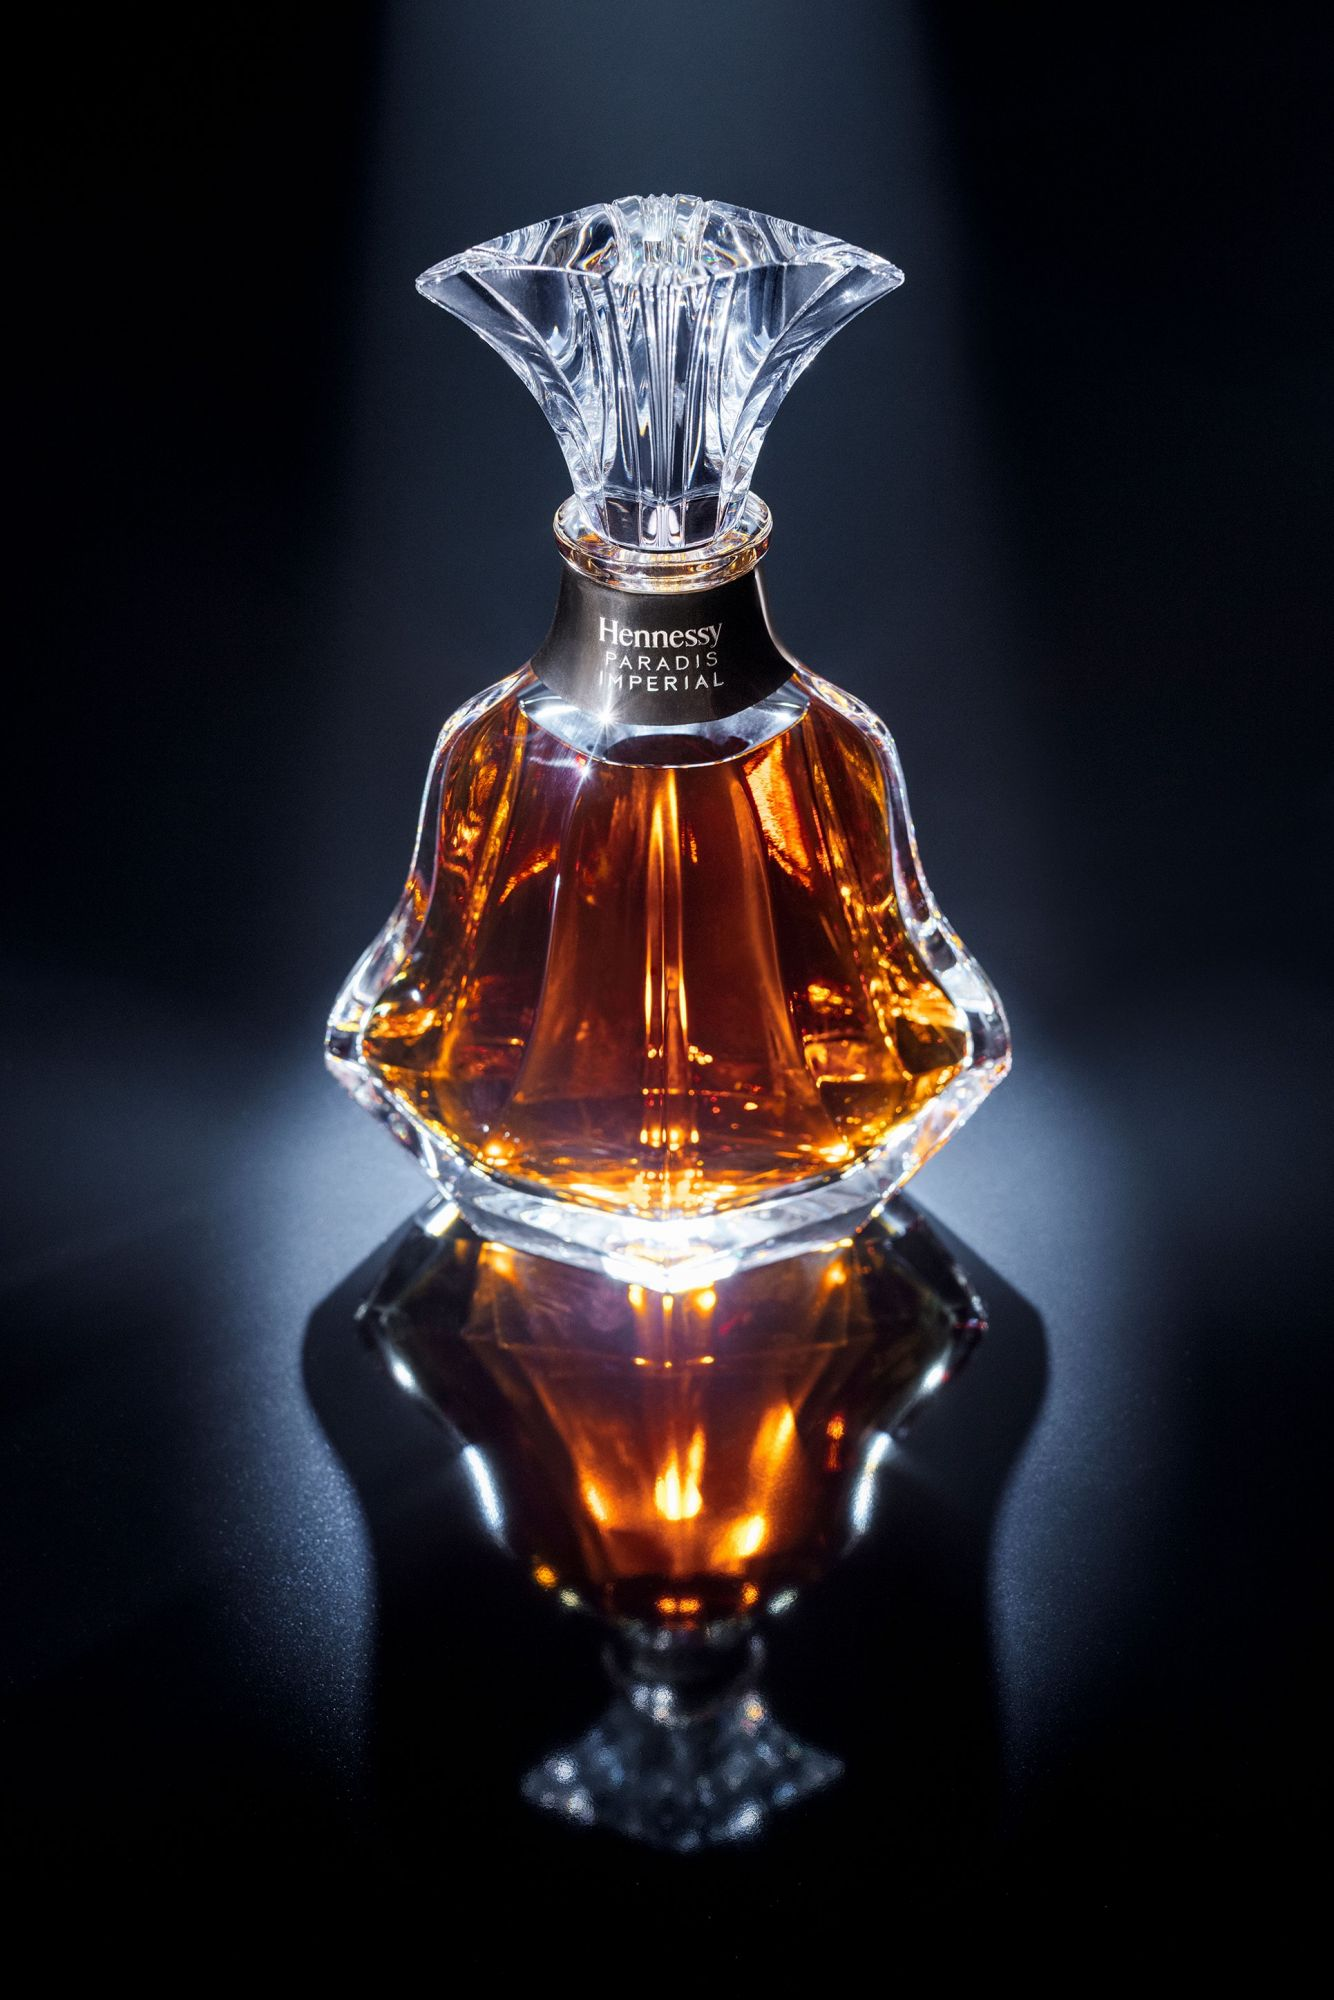 Hennessy Paradis Imperial's New Creation Leaves Nothing to Chance